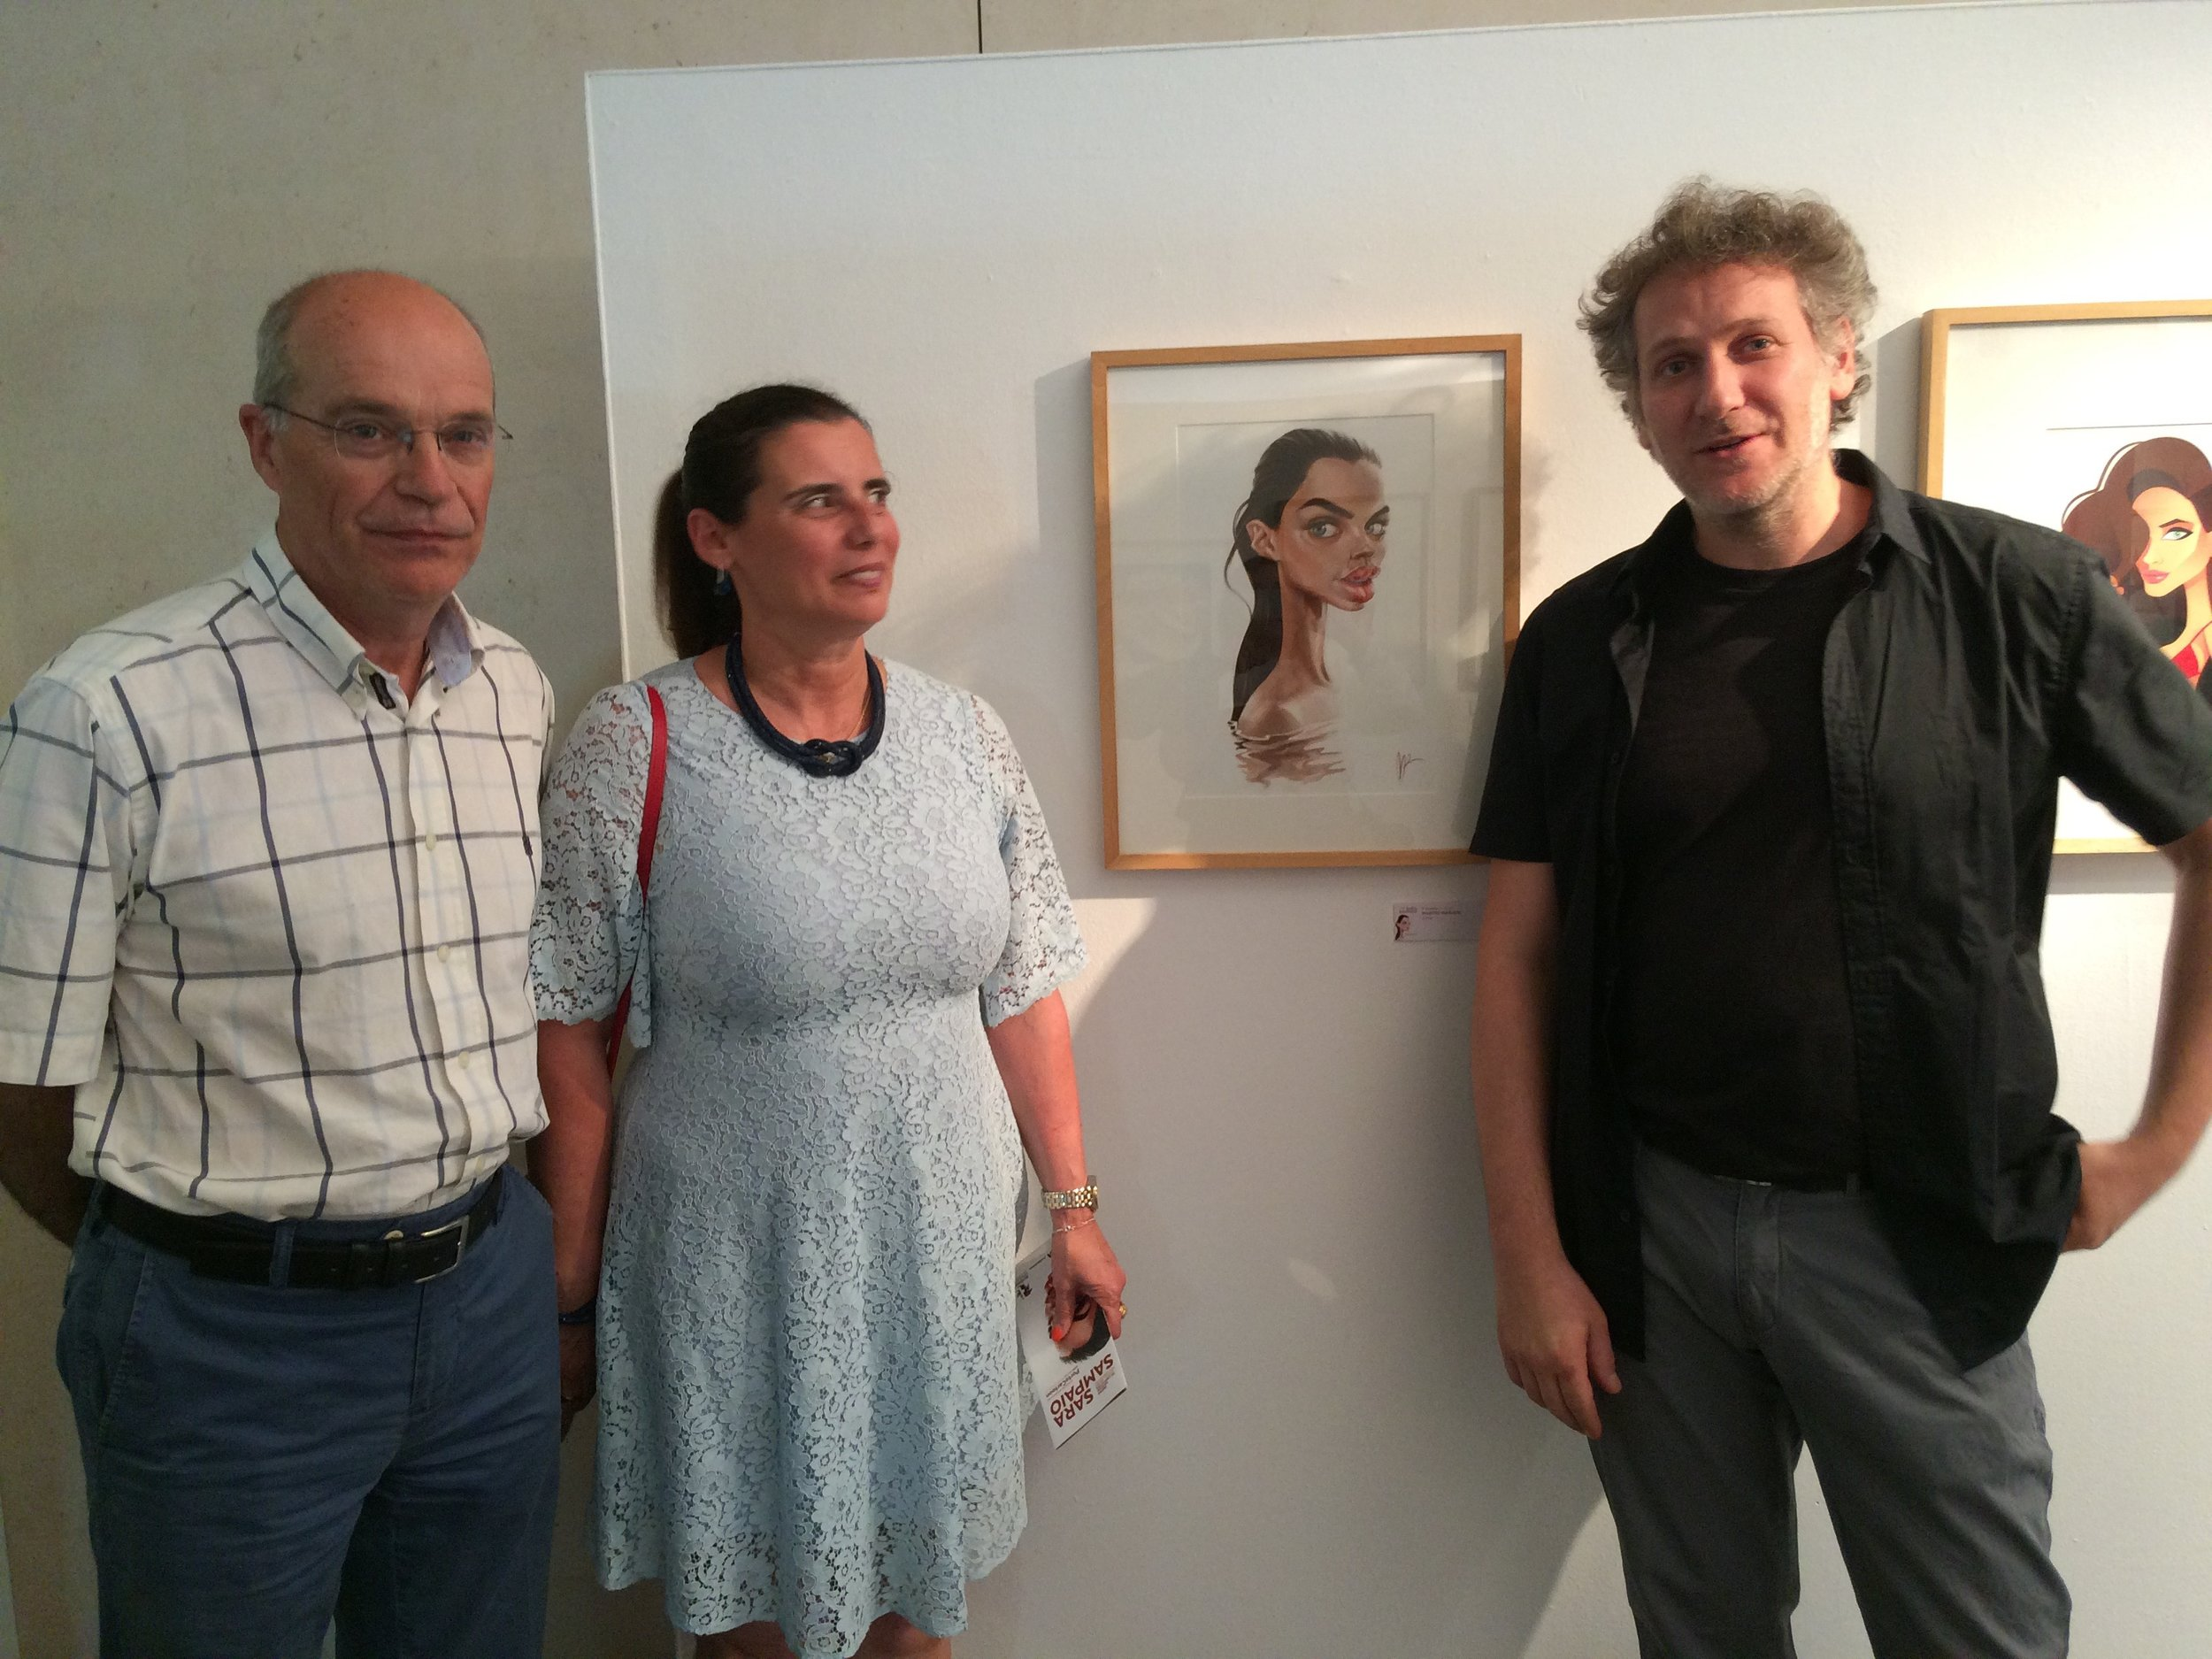 Sara Sampaio's parents and Marzio Mariani (author of the caricature) in front of the artwork that won the First Prize for the caricature contest at the PortoCartoon Festival 2016.